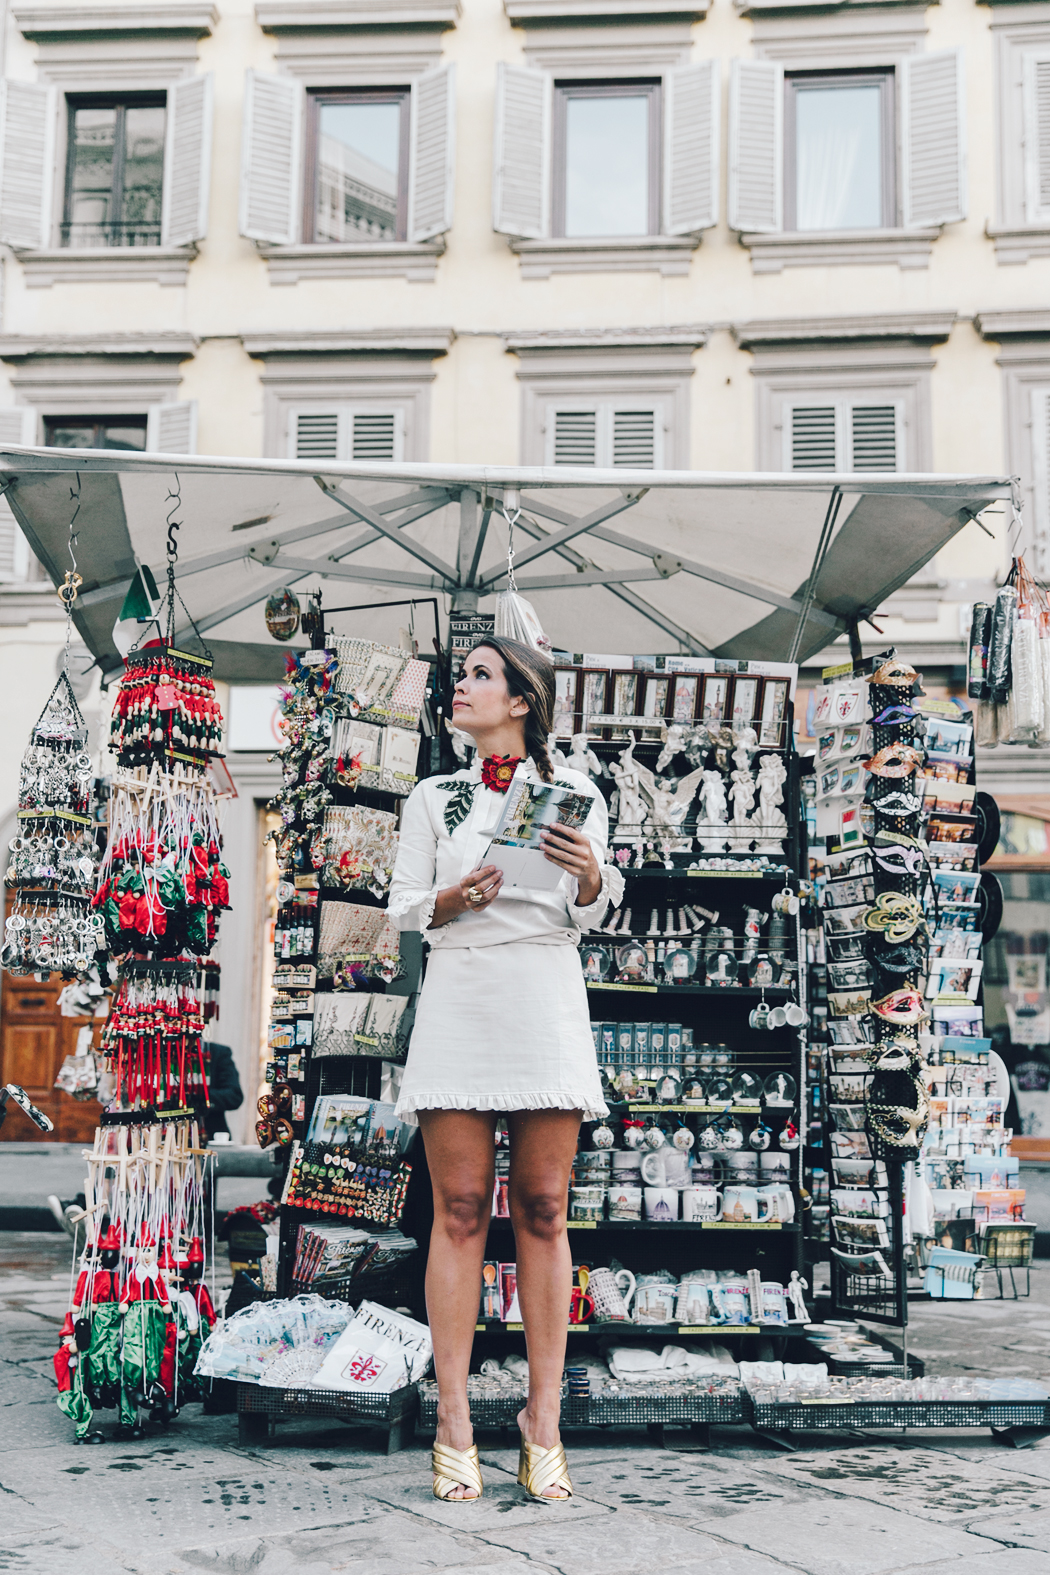 Firenze4Ever-Luisa_VIa_Roma-Gucci_White_Dress-Gucci_Gold_Sandals-Outfit-Florence-Street_Style-3